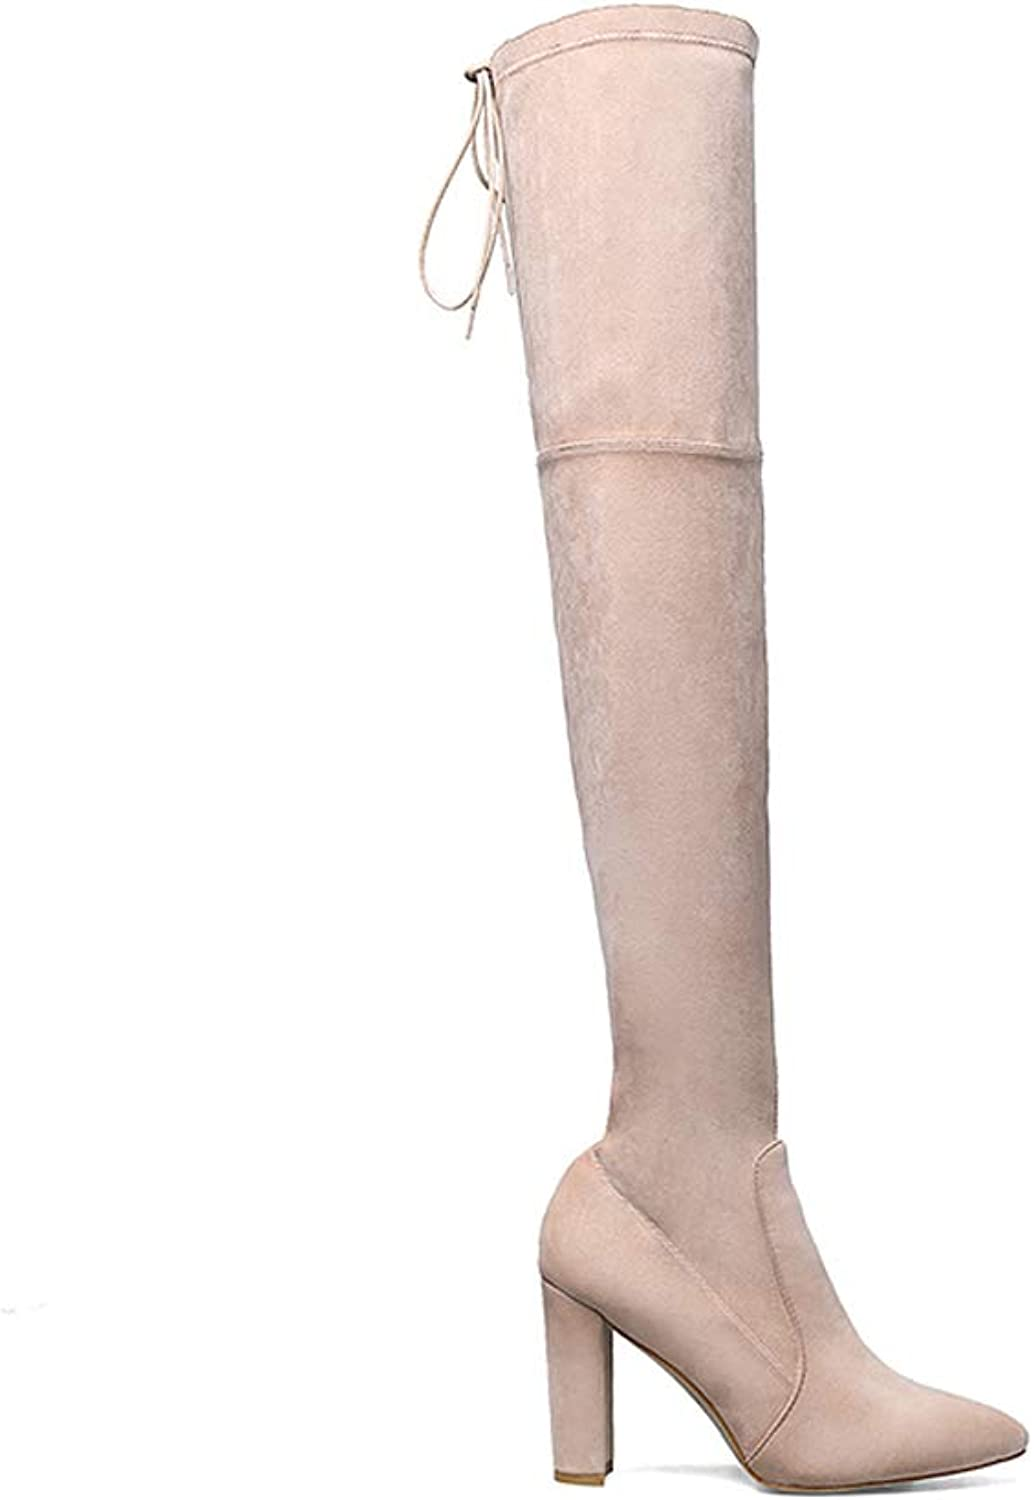 Perixir Women's Over Knee High Boots Suede Pointed Toe High Heels